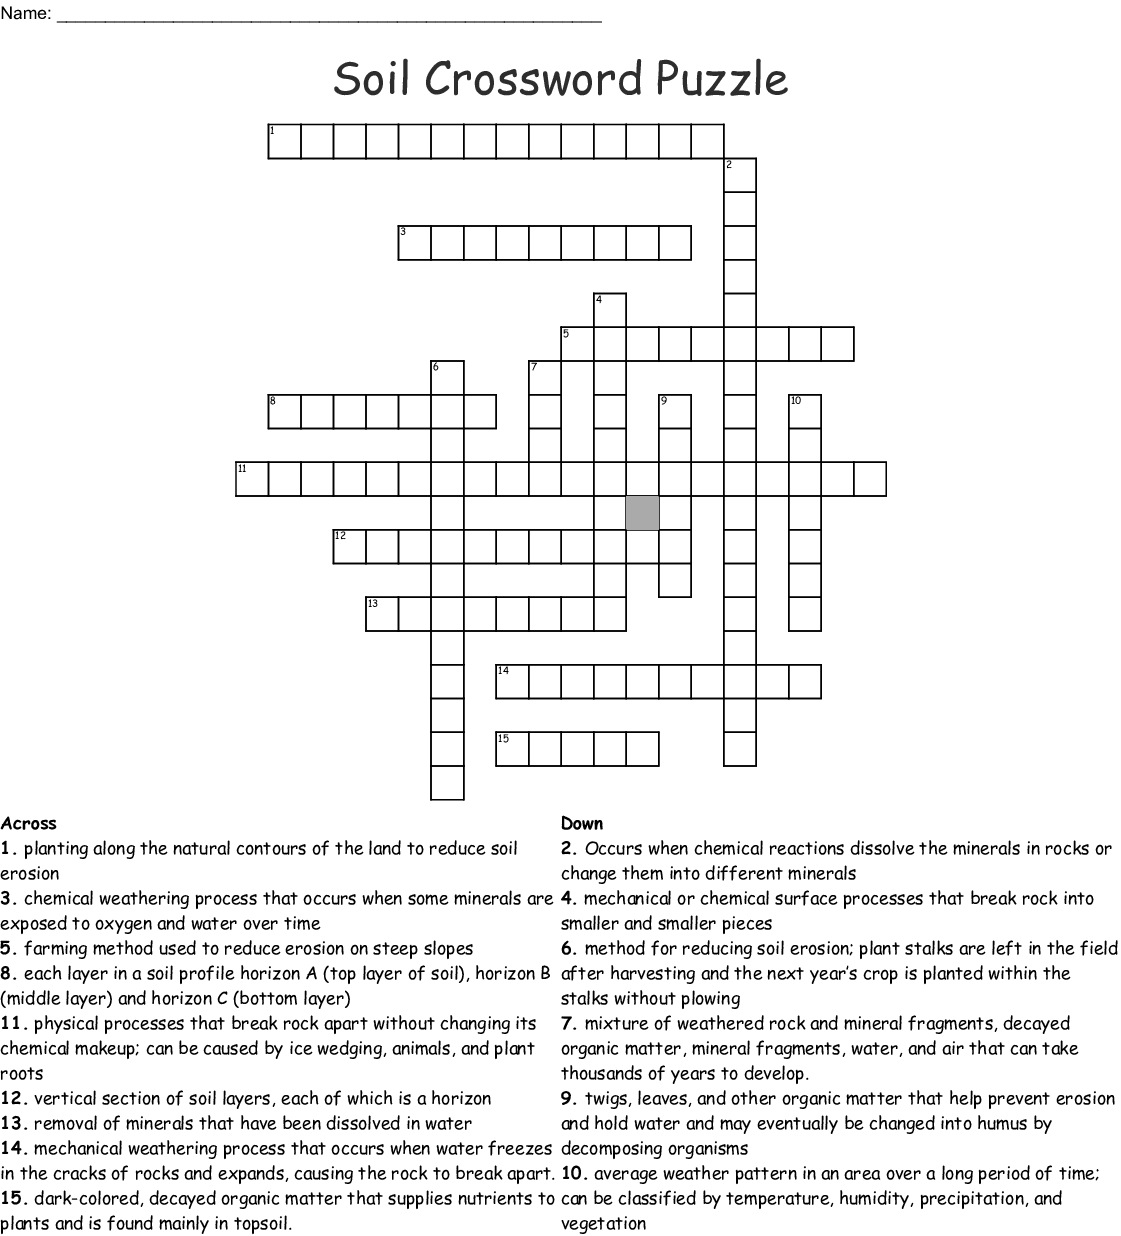 Soil Crossword Puzzle